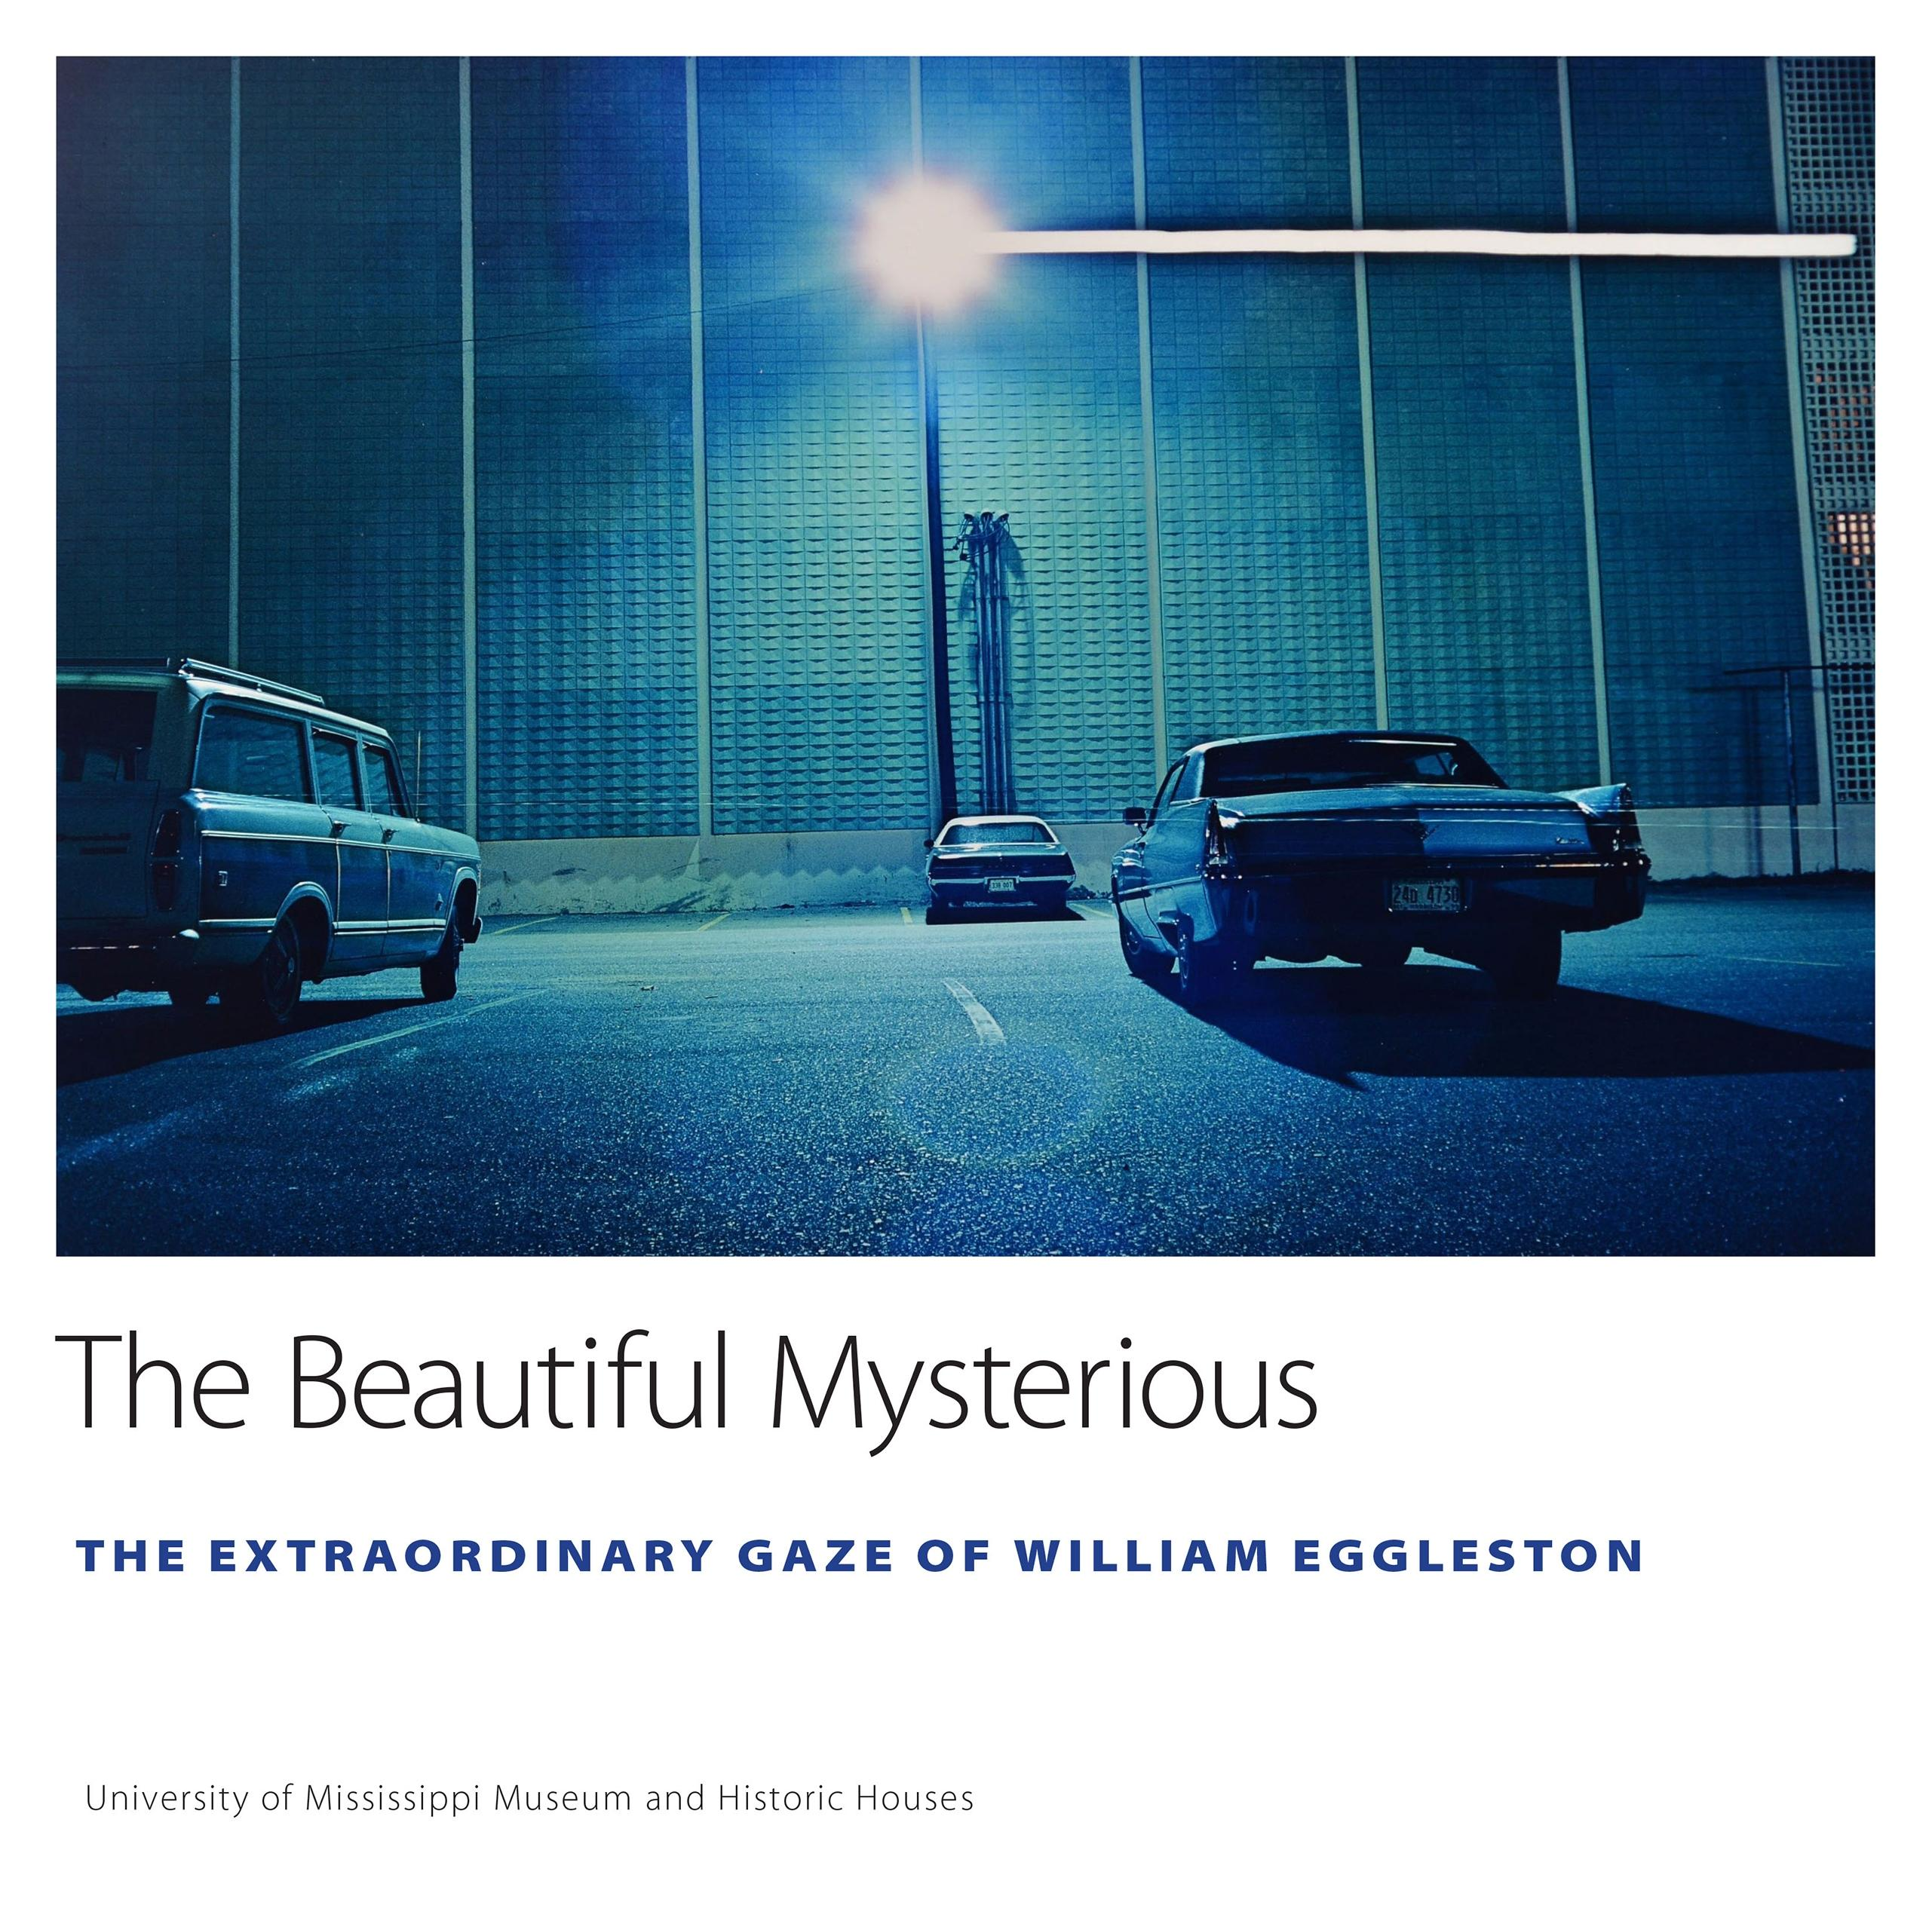 University of Mississippi Museum and Historic Houses: The Beautiful Mysterious (Hardcover)